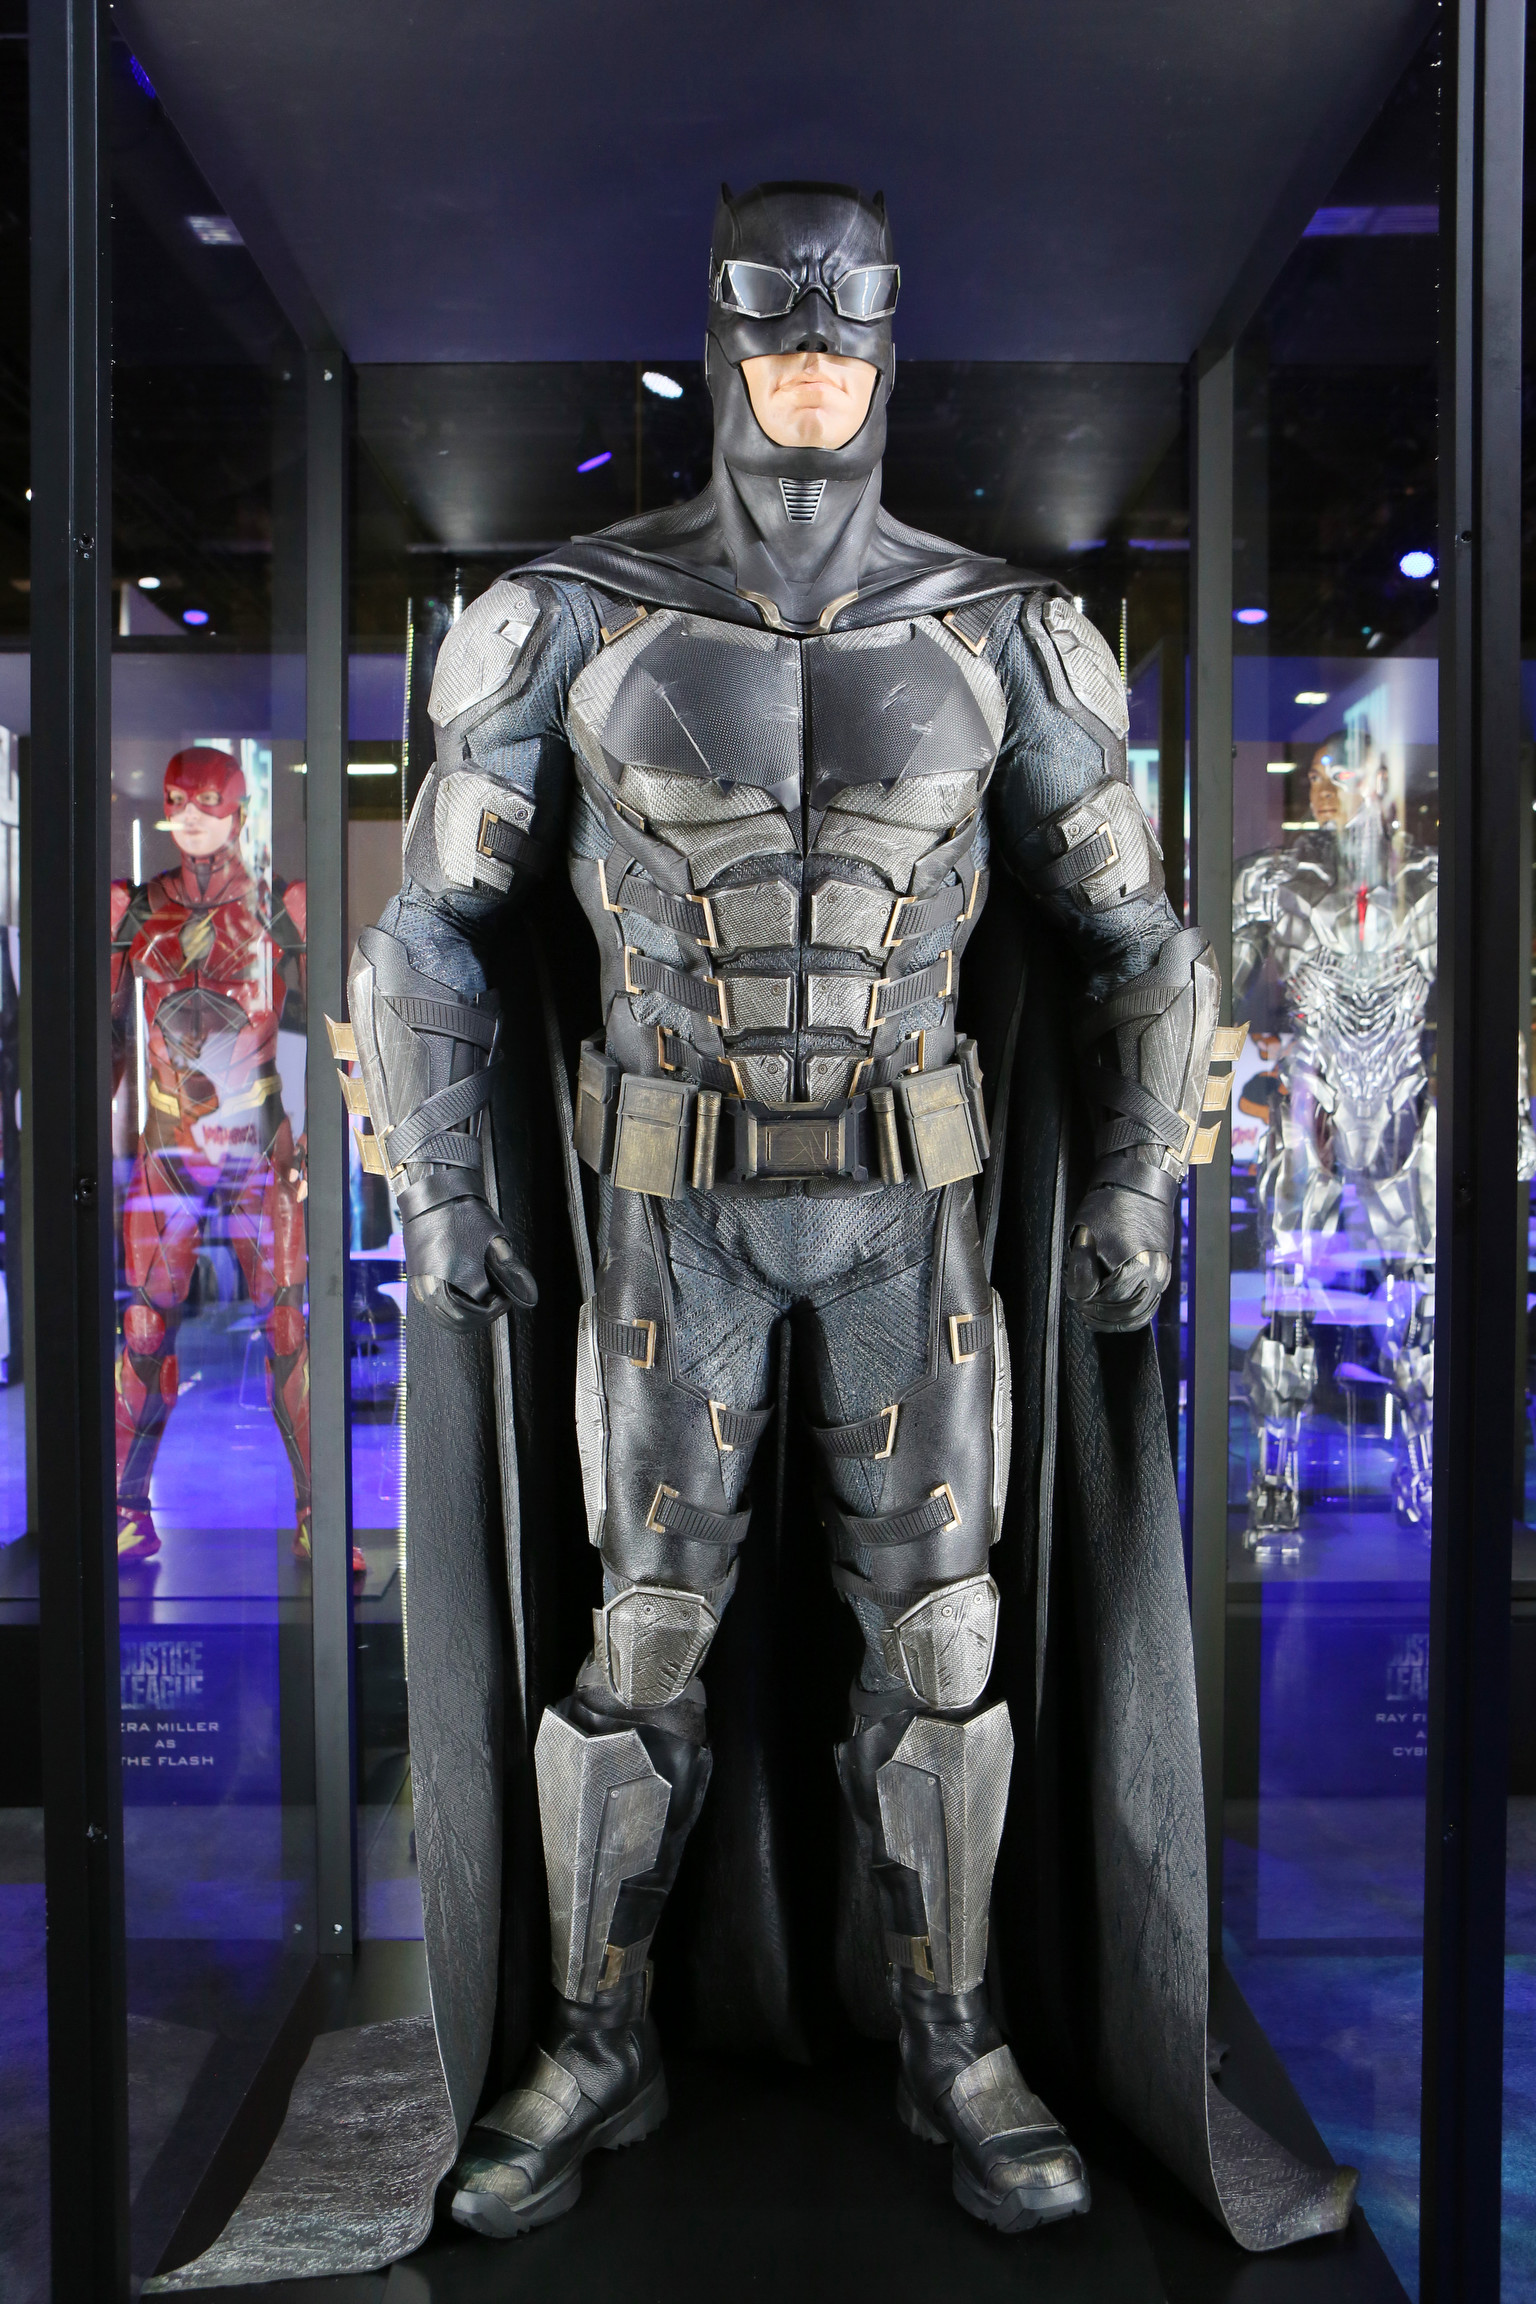 Pictured Justice League costumes of The Flash Batman Cyborg Wonder Woman and Aquaman. & Warner Bros. Consumer Products Brings Licensing Expo 2017 to Life ...